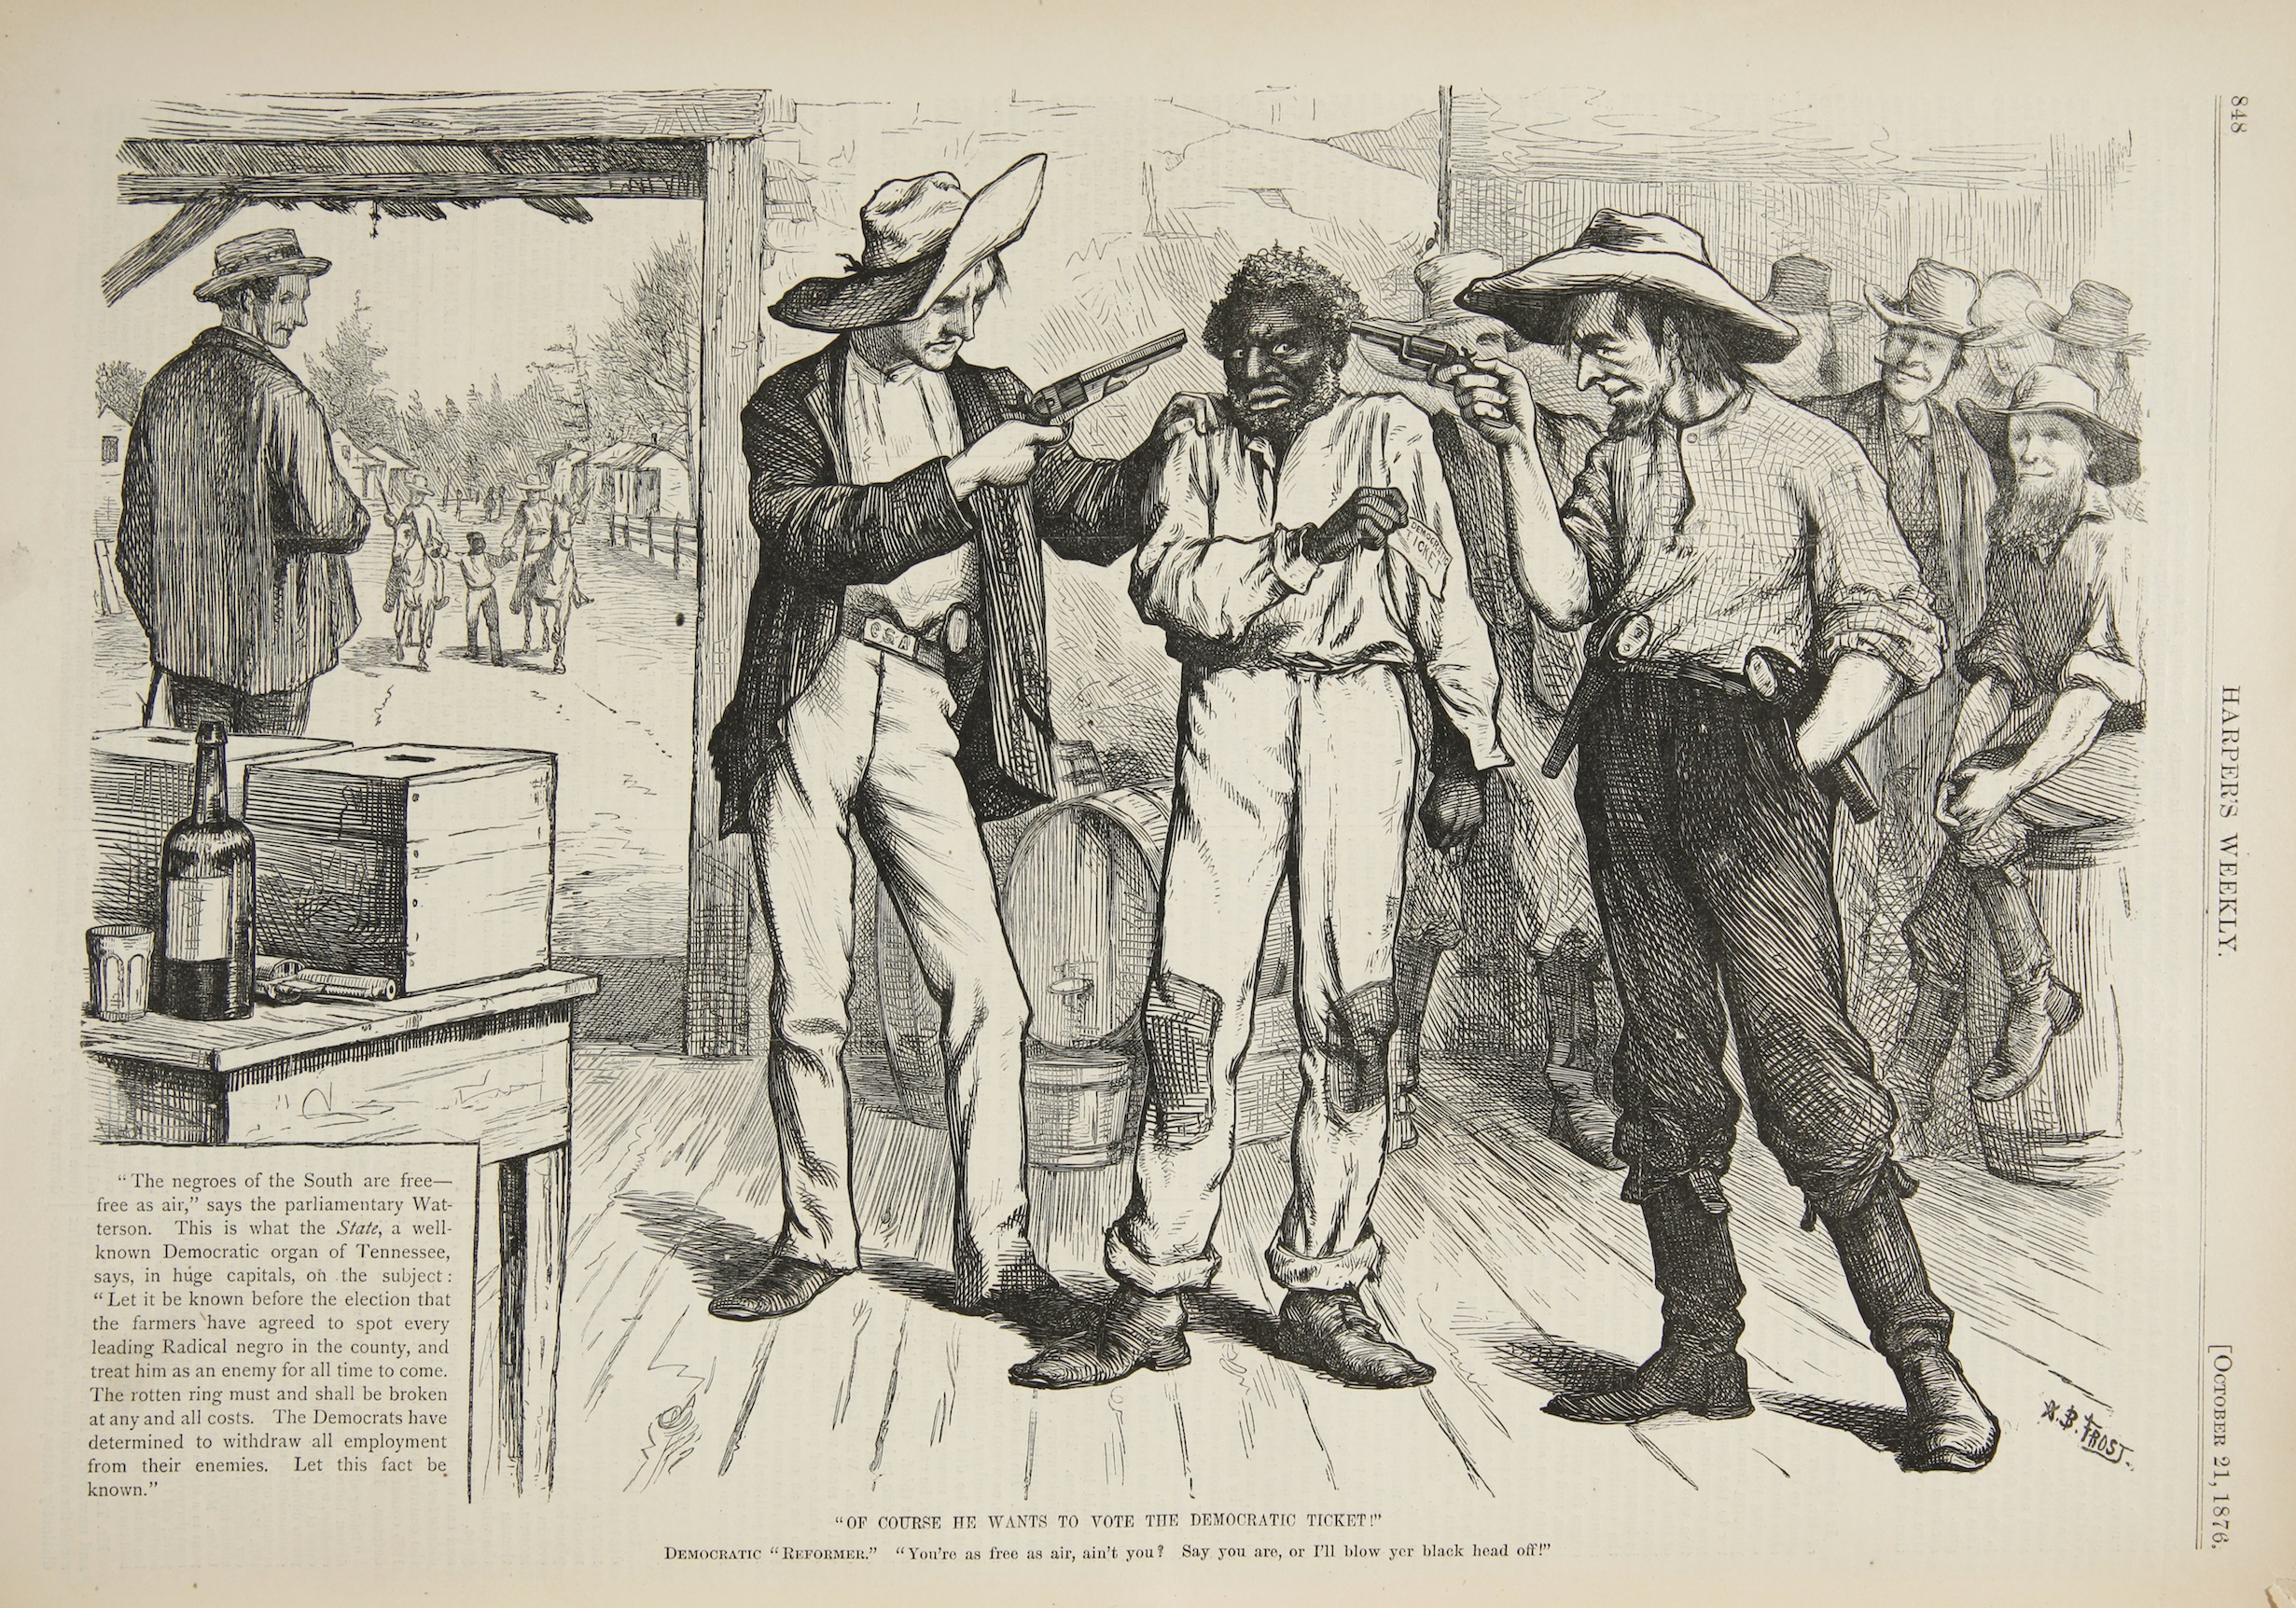 This depiction shows of the perils of Reconstruction voting, which Free State of Jones depicts with harsh accuracy.